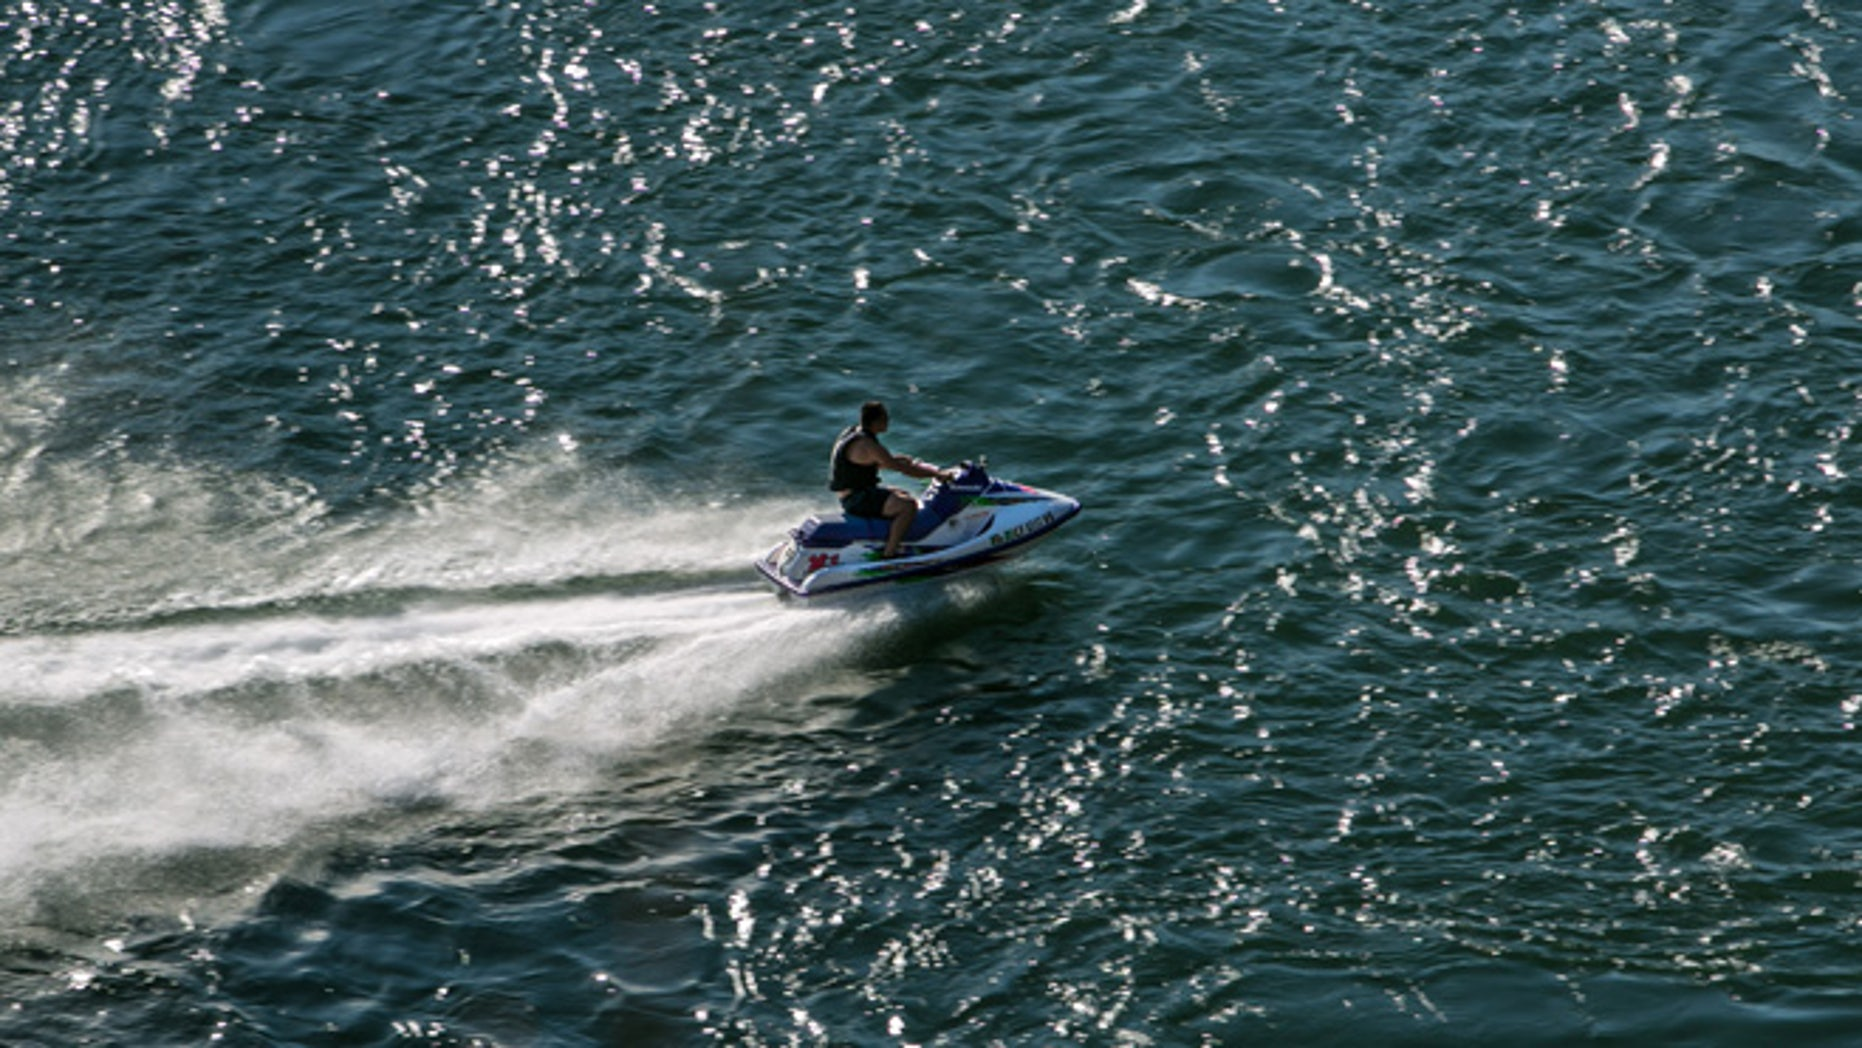 """REDDING, CA - JULY 19:  A man on a jet ski rides up the Sacramento River as viewed on July 19, 2015, in Redding, California. After entering the fourth year of drought, reservoirs continue to flucuate at low levels, Governor Jerry """"Edmund"""" Brown has declared a """"mandatory reduction"""" on water useage for all of California. (Photo by George Rose/Getty Images)"""